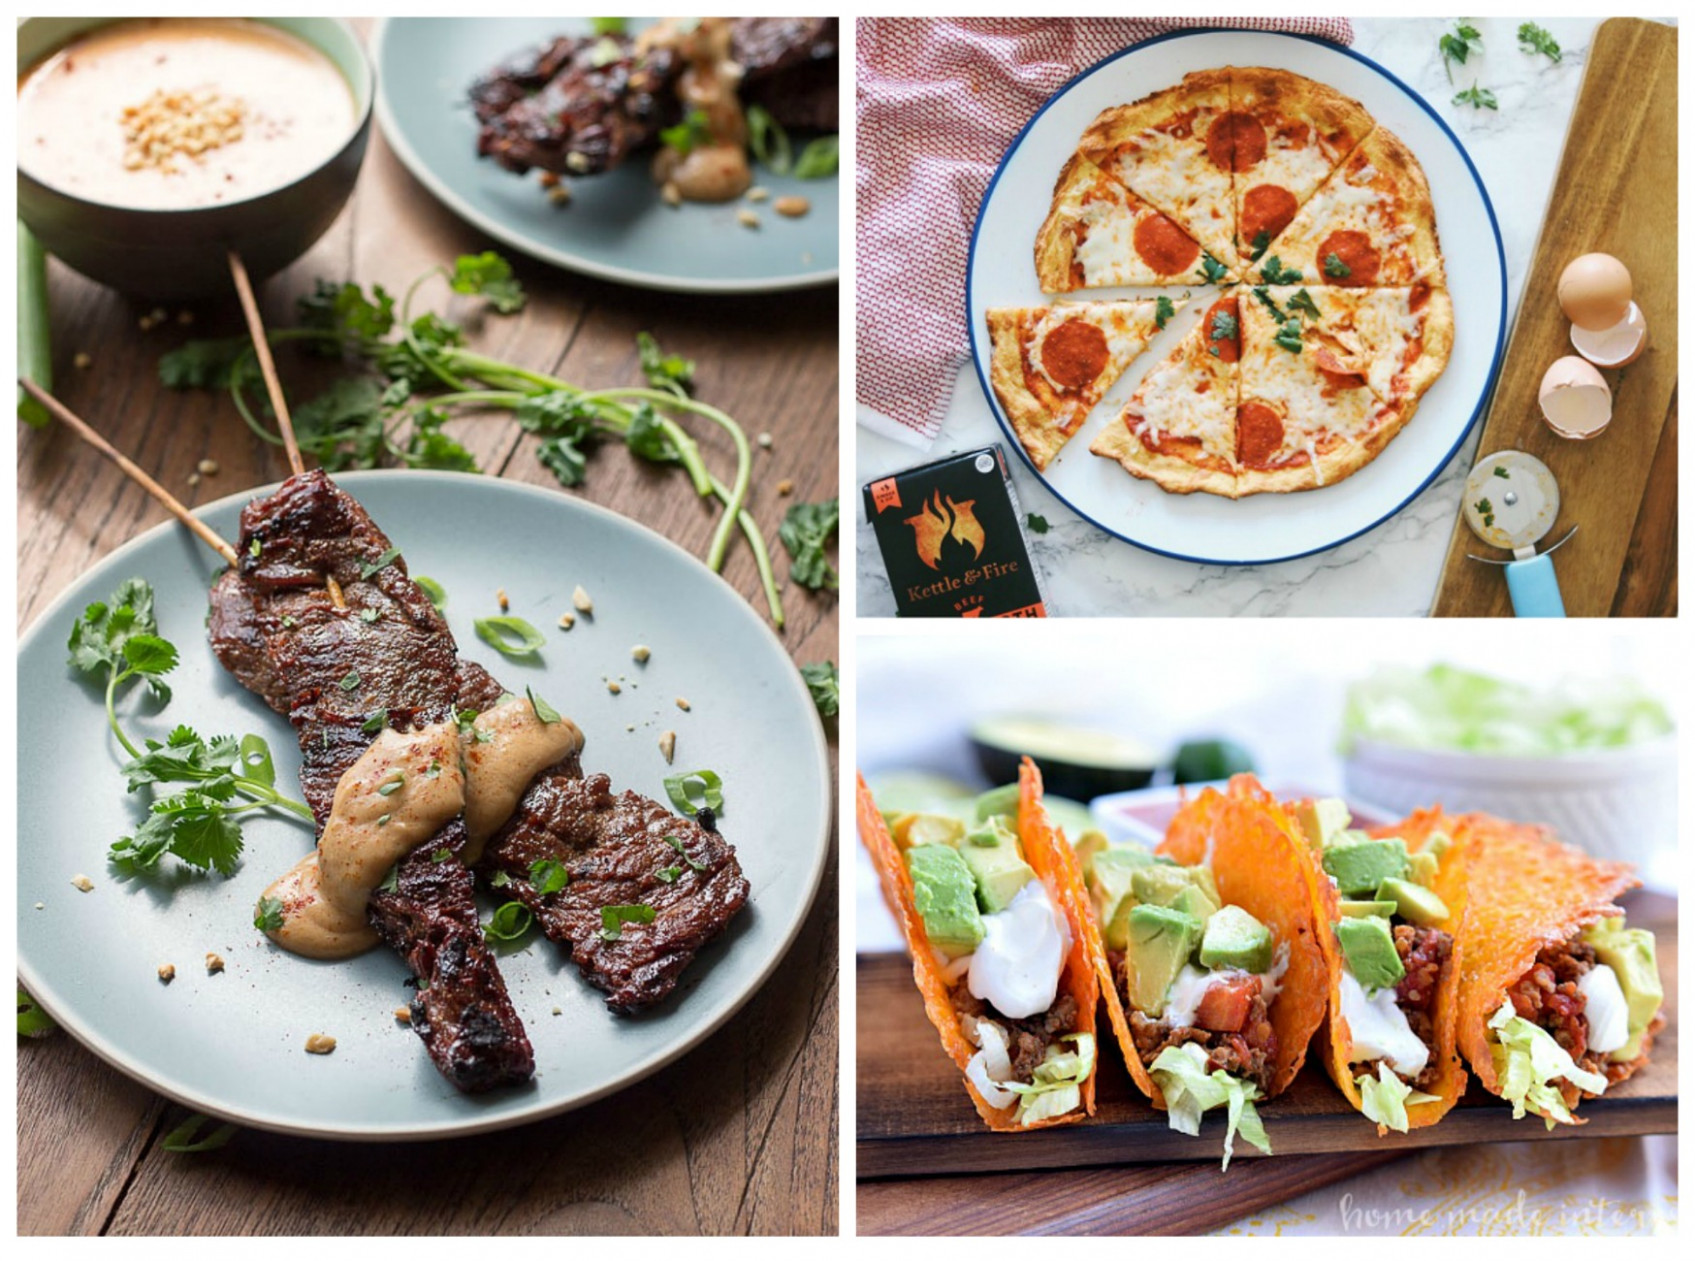 10 Easy Keto Dinner Recipes That'll Turn You Into A Fat ..